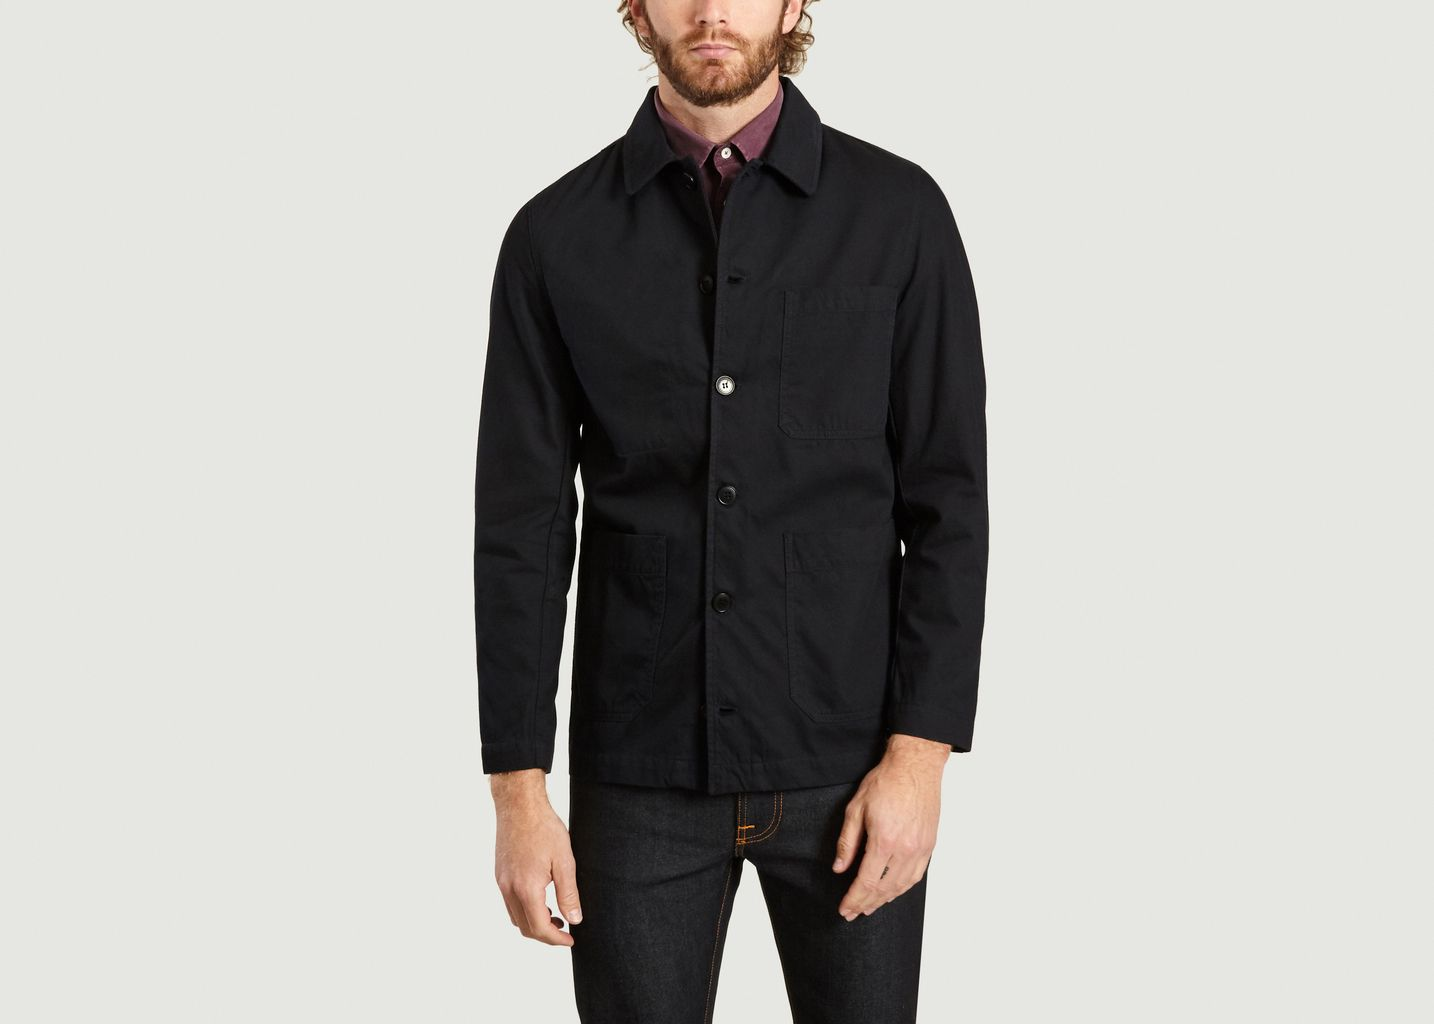 Jacket Worker - Uniforms For The Dedicated